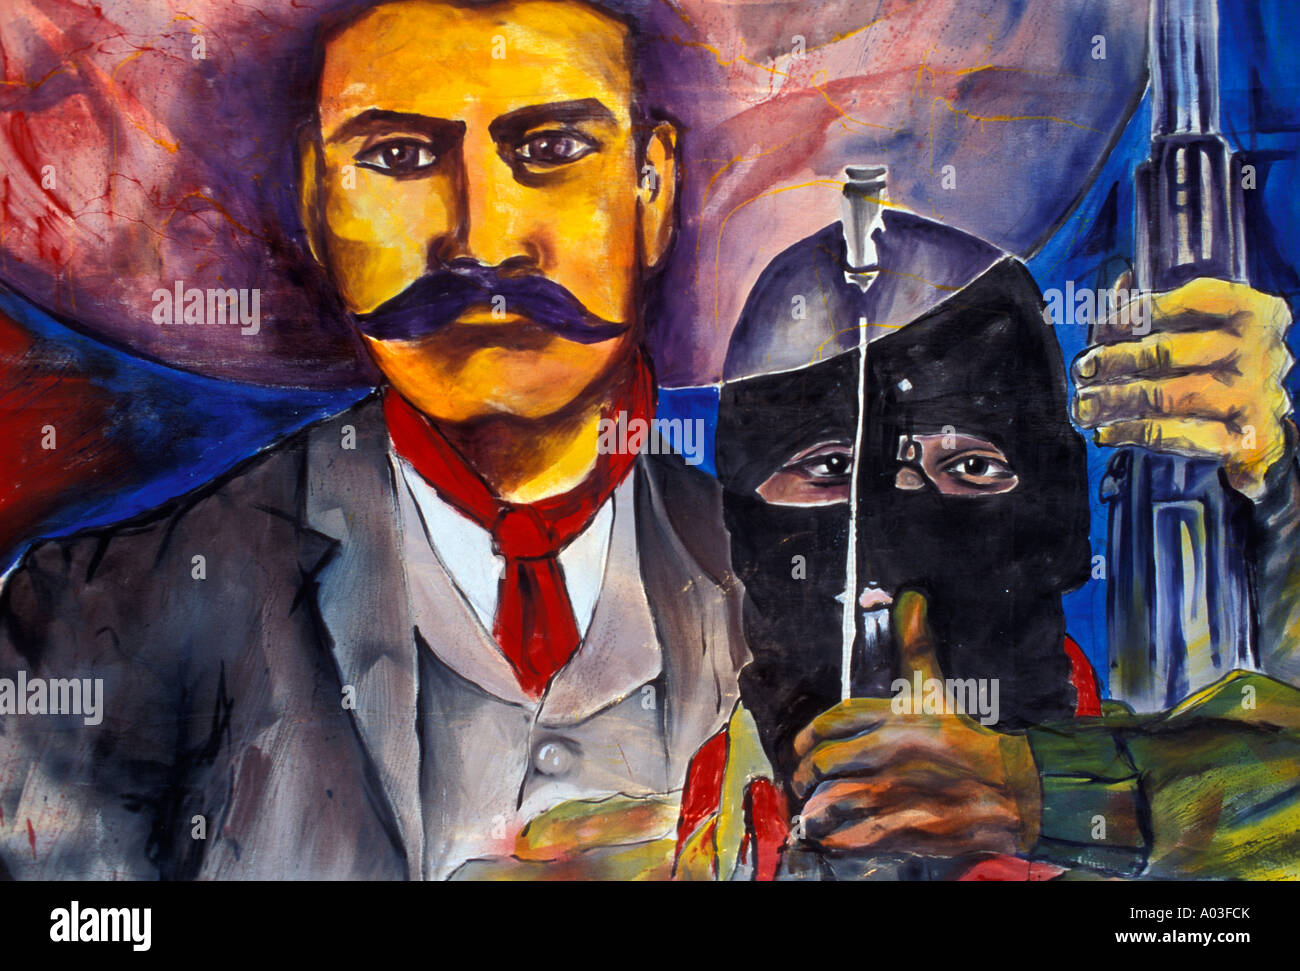 Stock image of a mexican mural with emiliano zapata and for Emiliano zapata mural